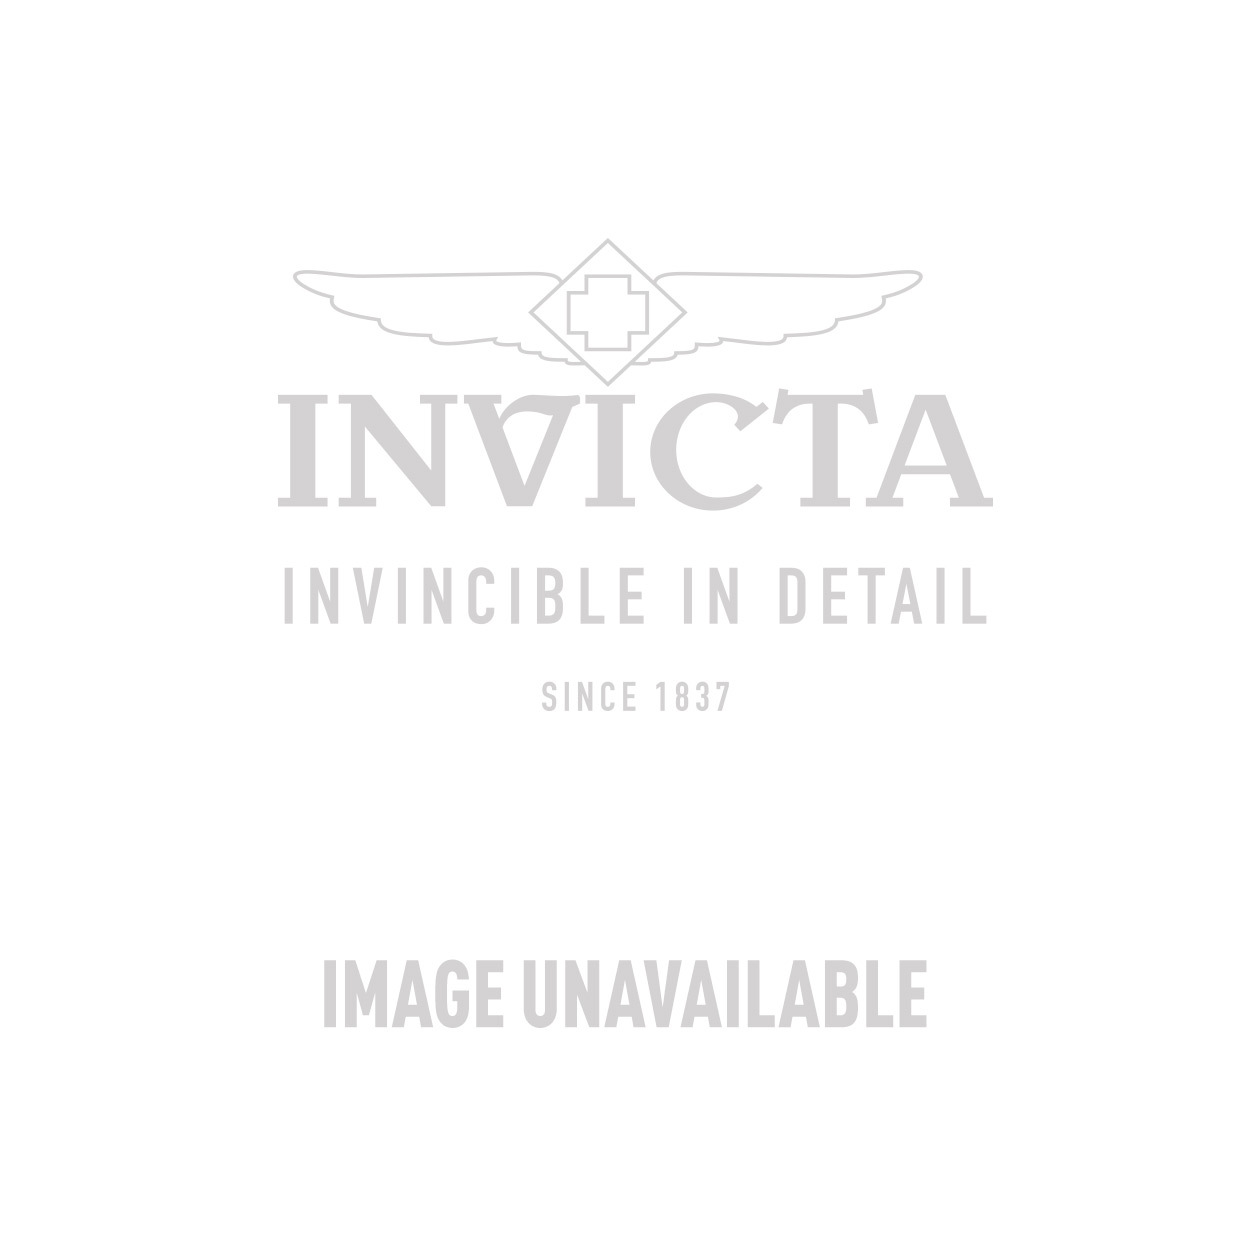 Invicta Speedway Quartz Watch - Rose Gold, Black case with Brown tone Leather band - Model 10712